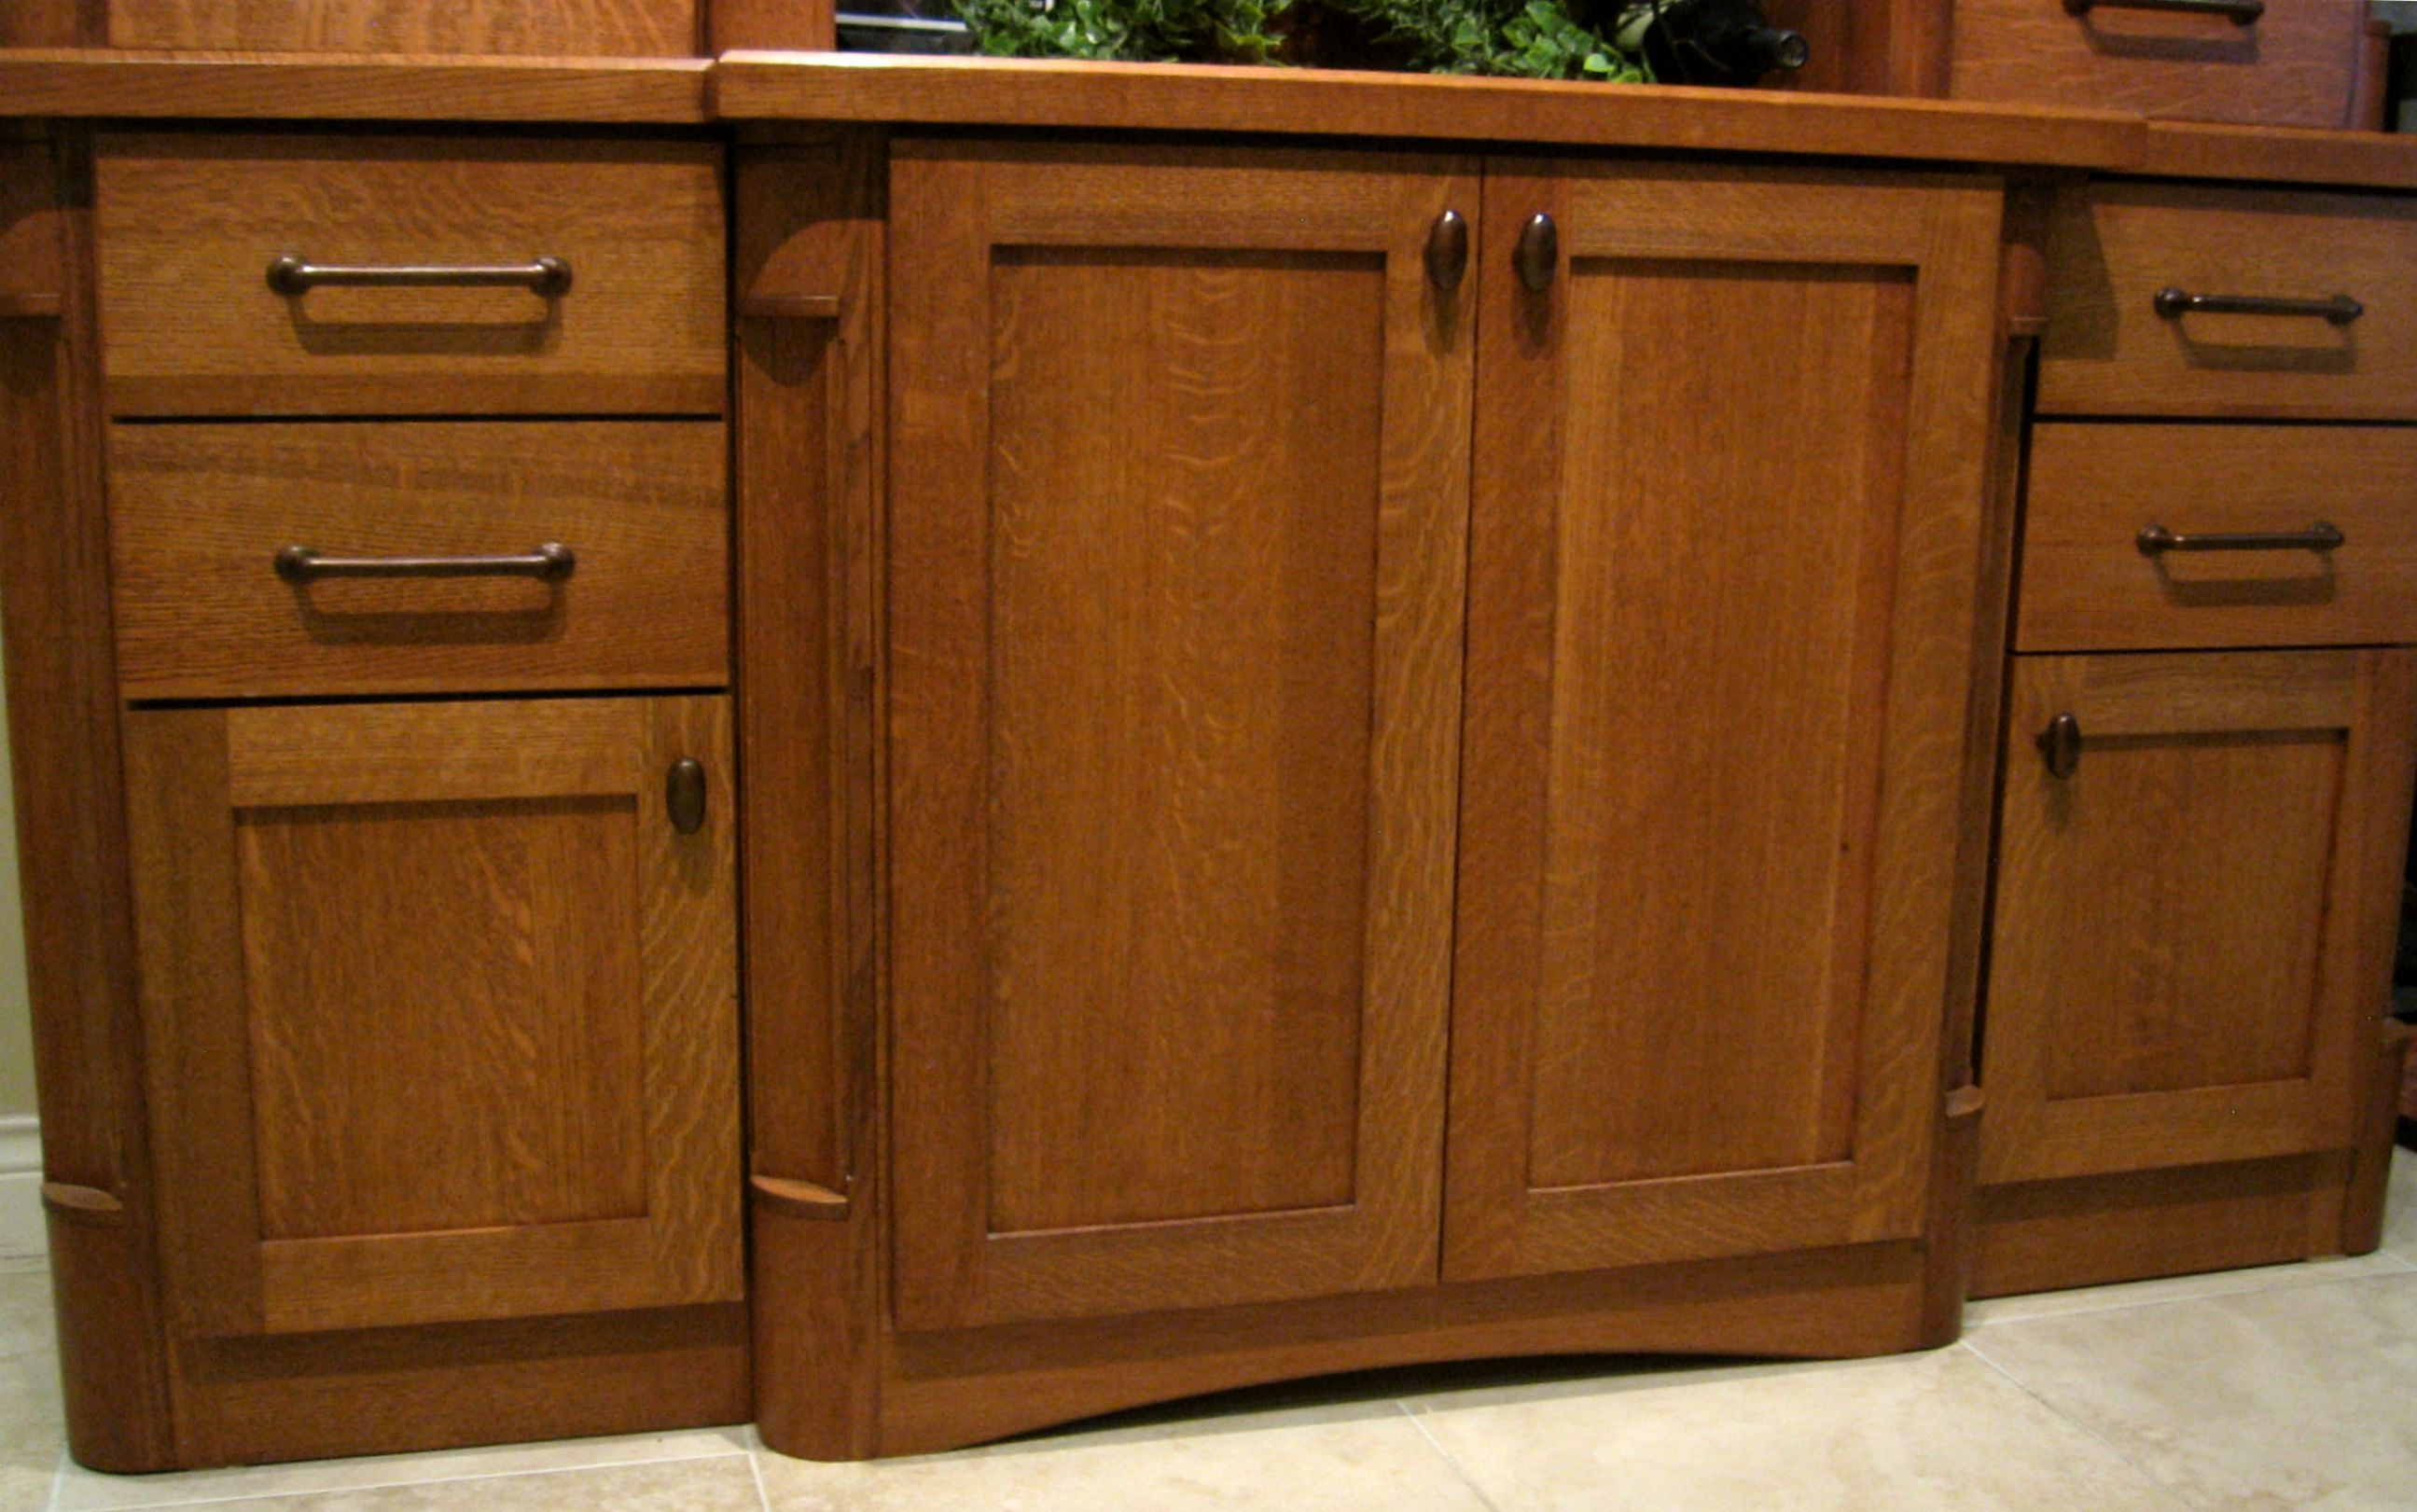 Darken Oak Kitchen Cabinets Google Search Kitchen Cabinet Door Styles Shaker Style Kitchen Cabinets Cabinet Door Styles